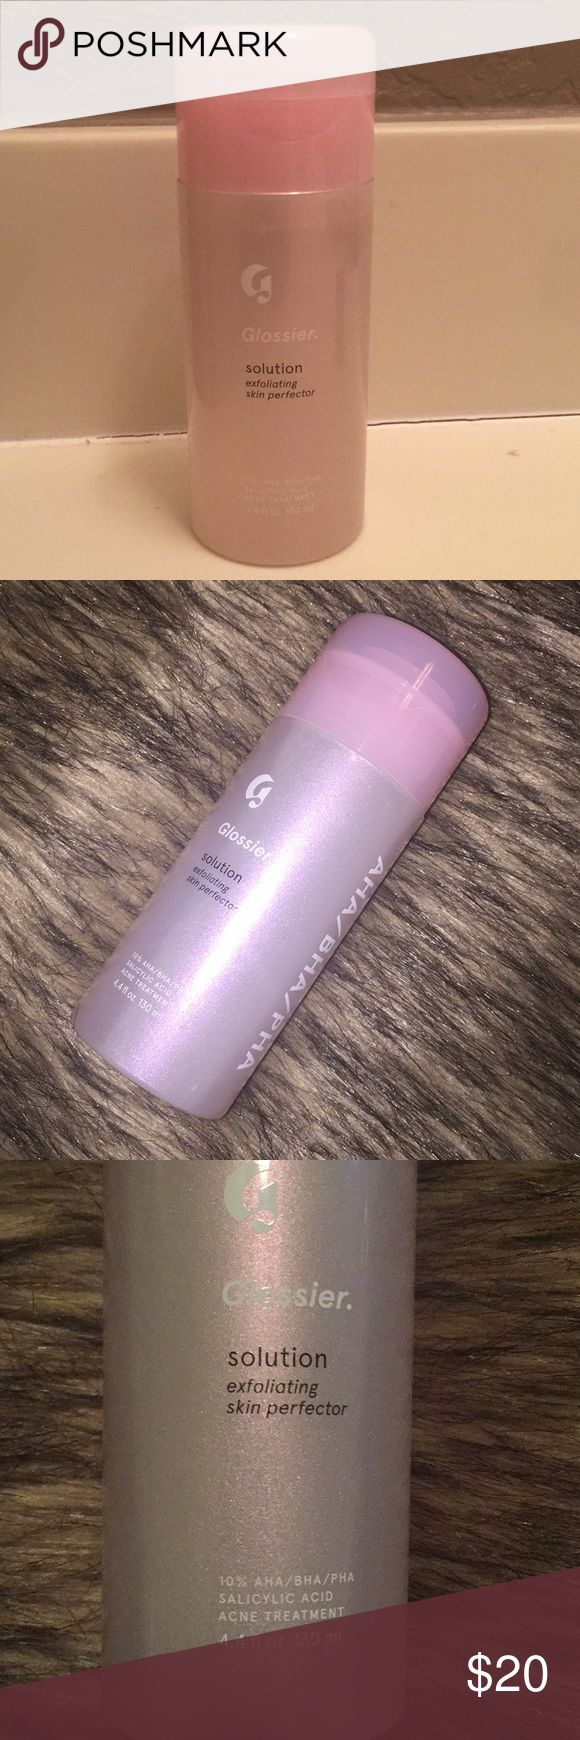 Glossier Solution + Cotton Rounds Glossier solution: used 4x, about 95% or more remaining, kept sterile by using a new cotton pad per application. Glossier cotton rounds: originally 60 count but has been used, so now approximately 43 remain. Glossier You perfume sample: sprayed once, 1.5 ml. Le Labo Santal 33 sample: brand new, 0.75 ml. I would like to sell this at the given price but I am open to reasonable offers. Glossier Makeup